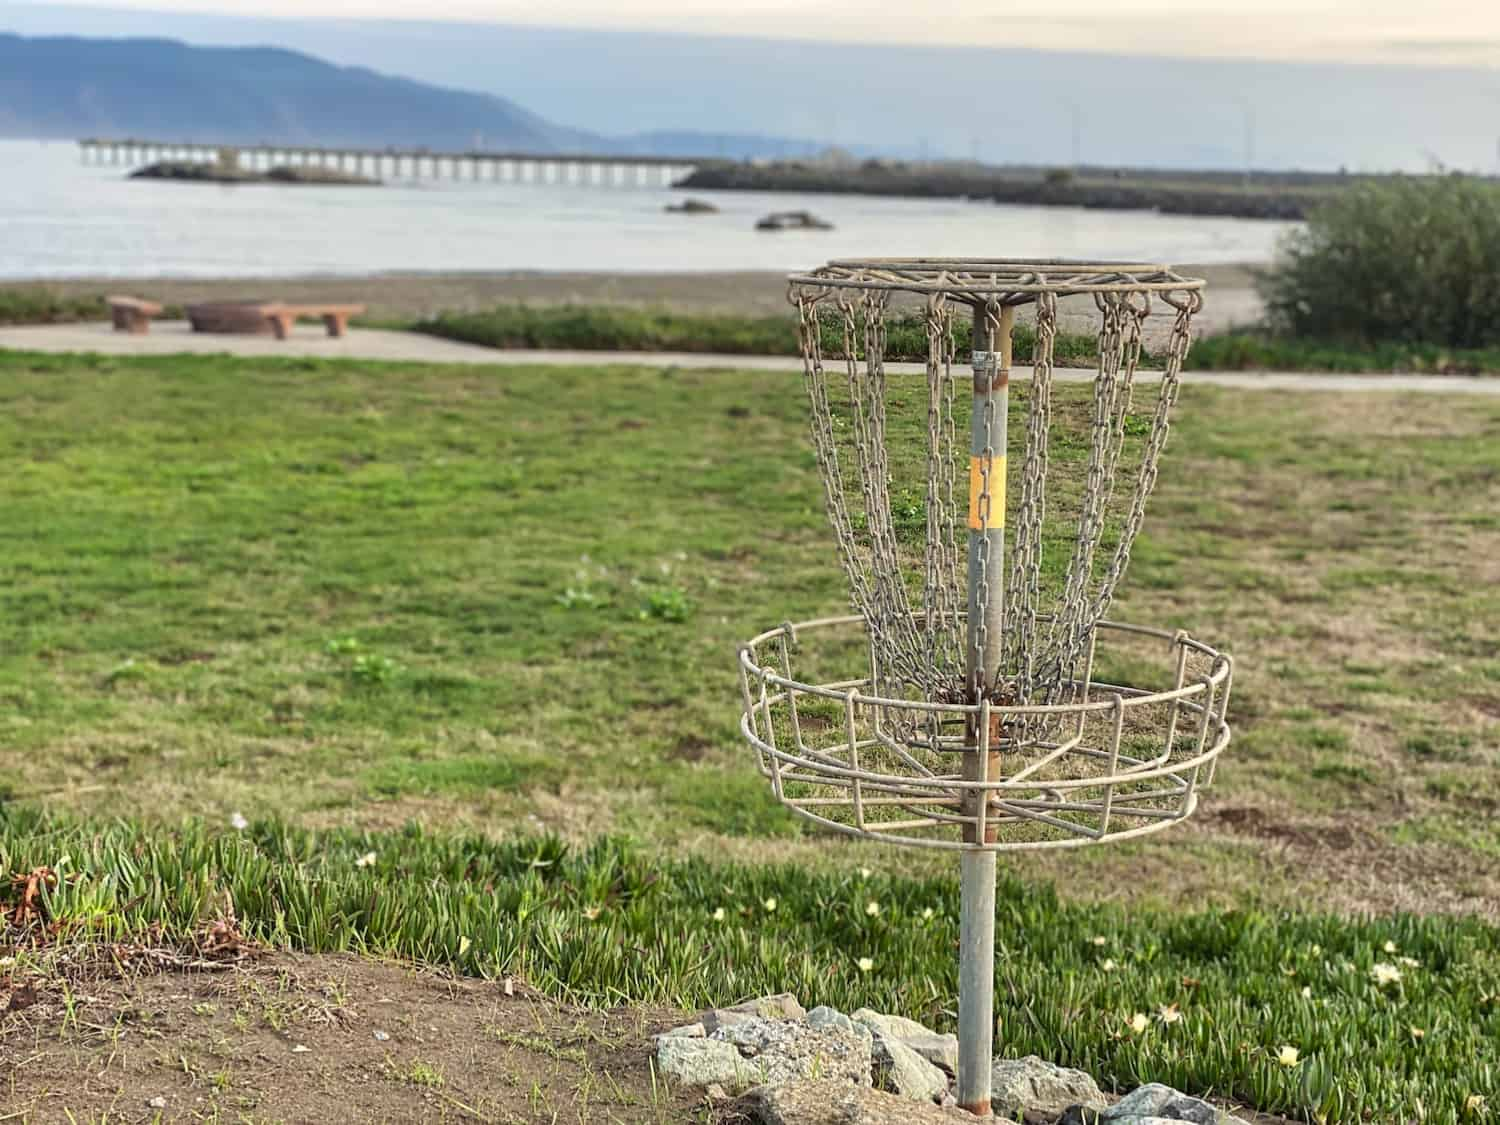 3 Days in Crescent City - Disc Golf